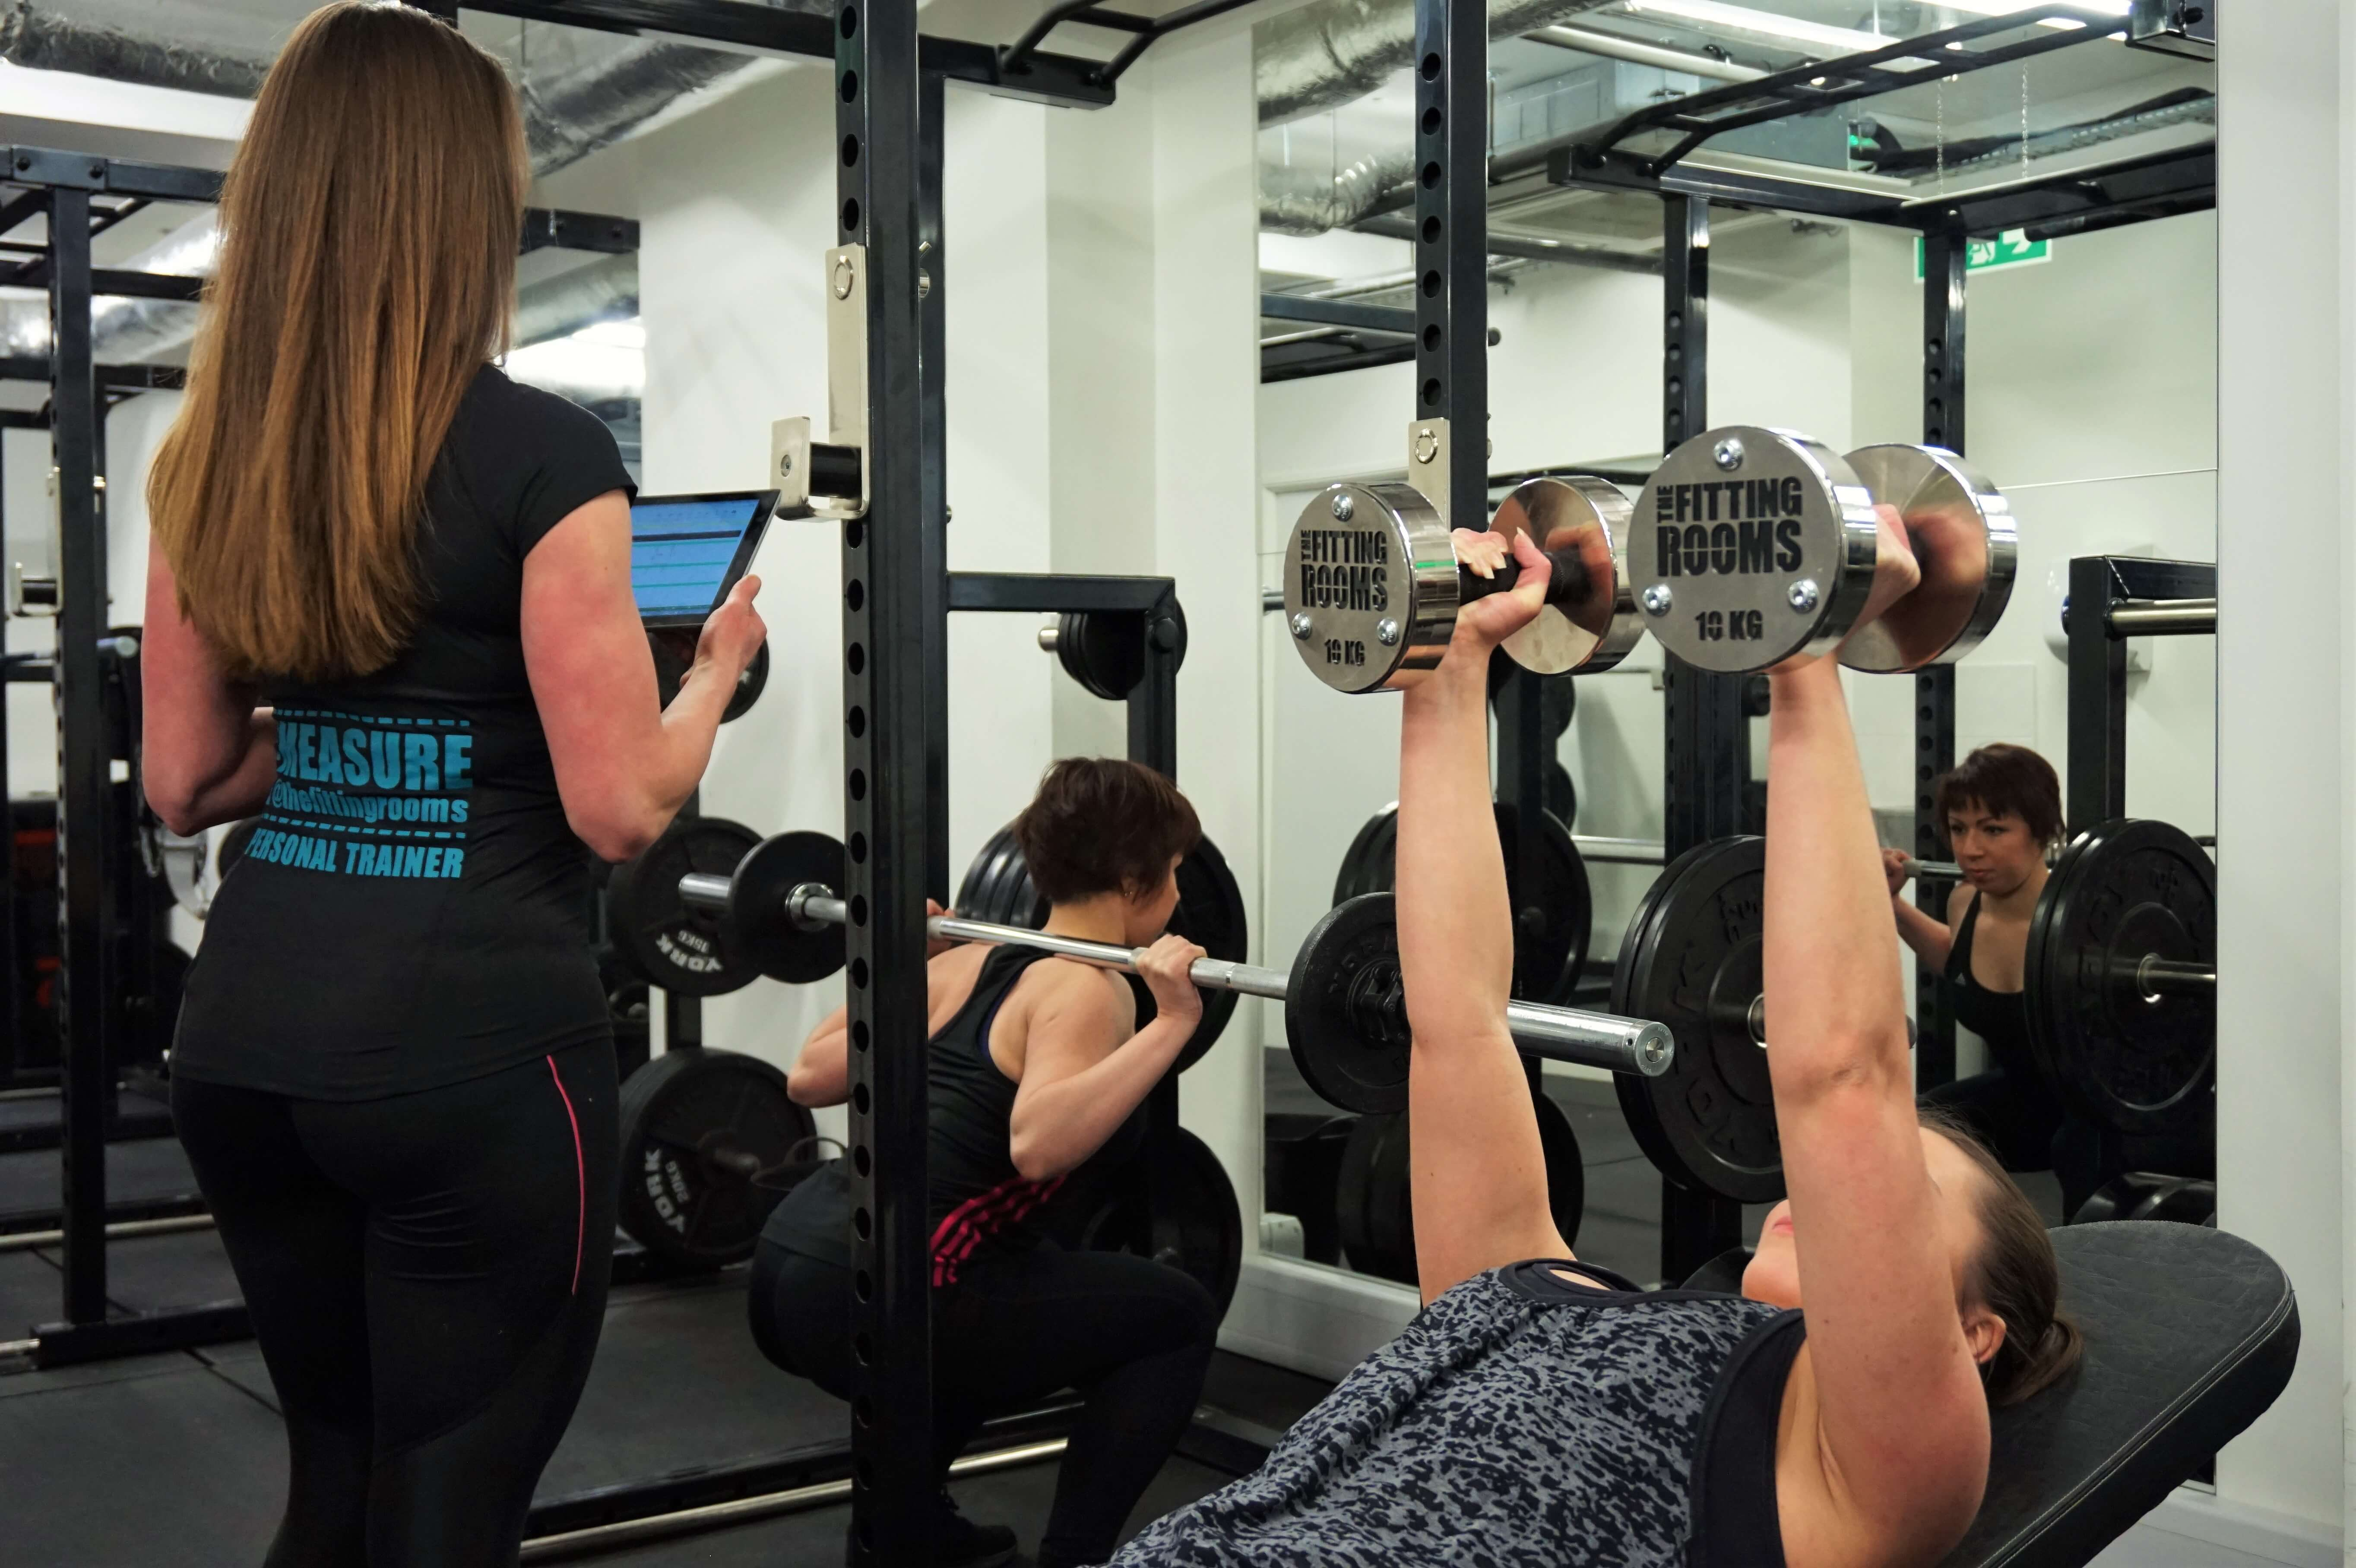 Women's weight training - personal trainer The Fitting Rooms Gym London Bridge Southwark